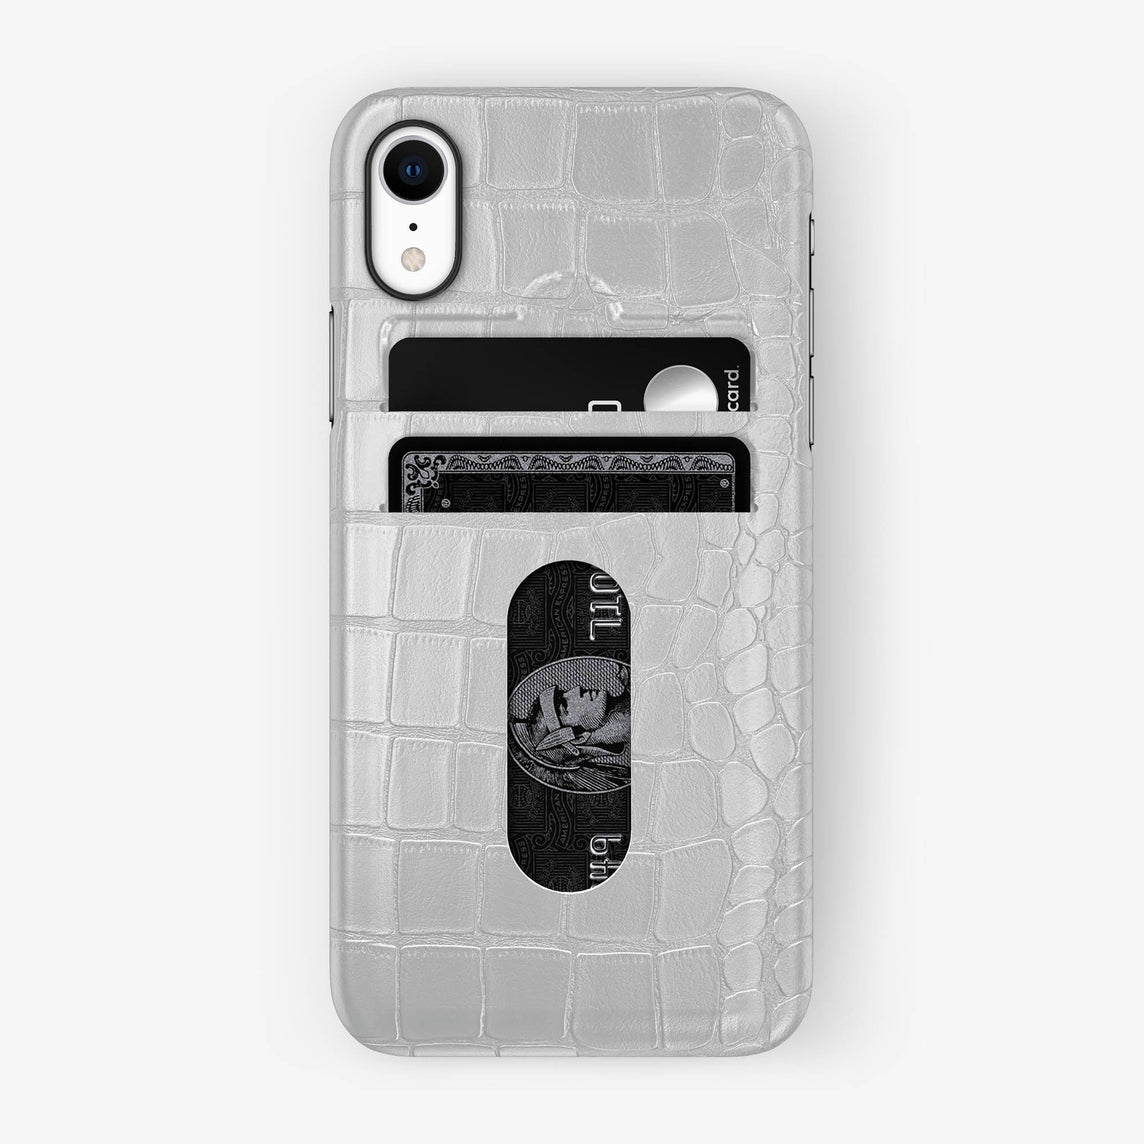 Alligator [iPhone Card Holder Case] [model:iphone-xr-case] [colour:white] [finishing:black]